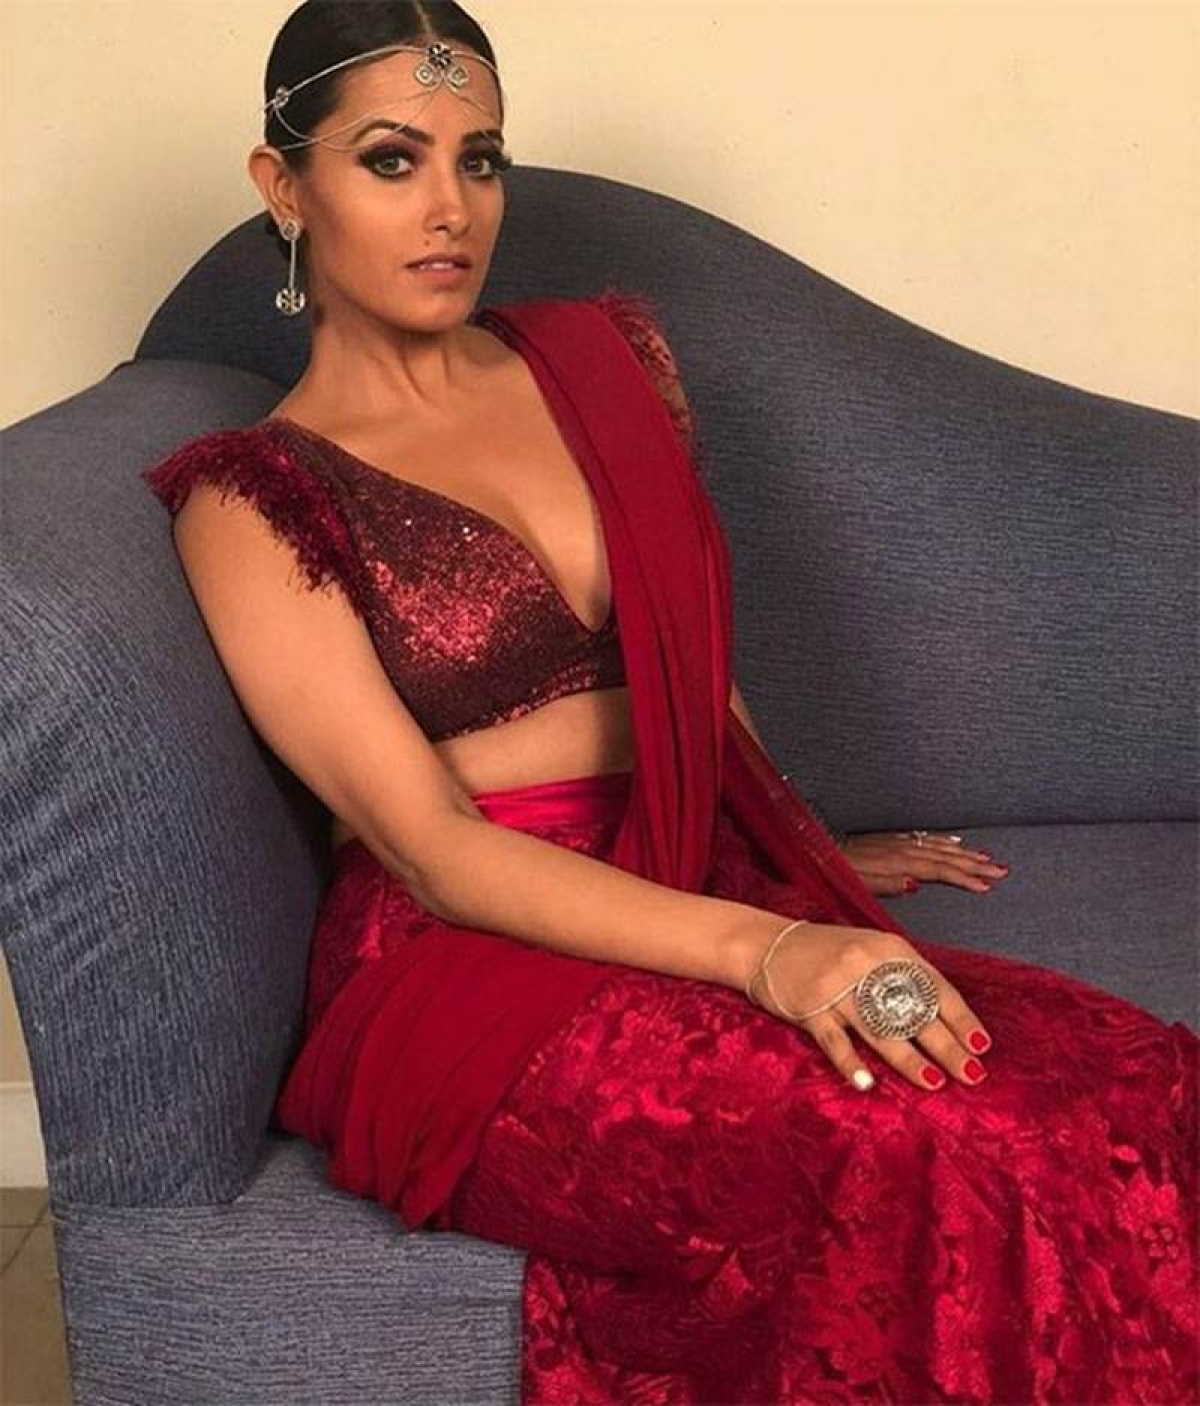 Naagin 3: Anita Hassanandani's look from the set can't be missed